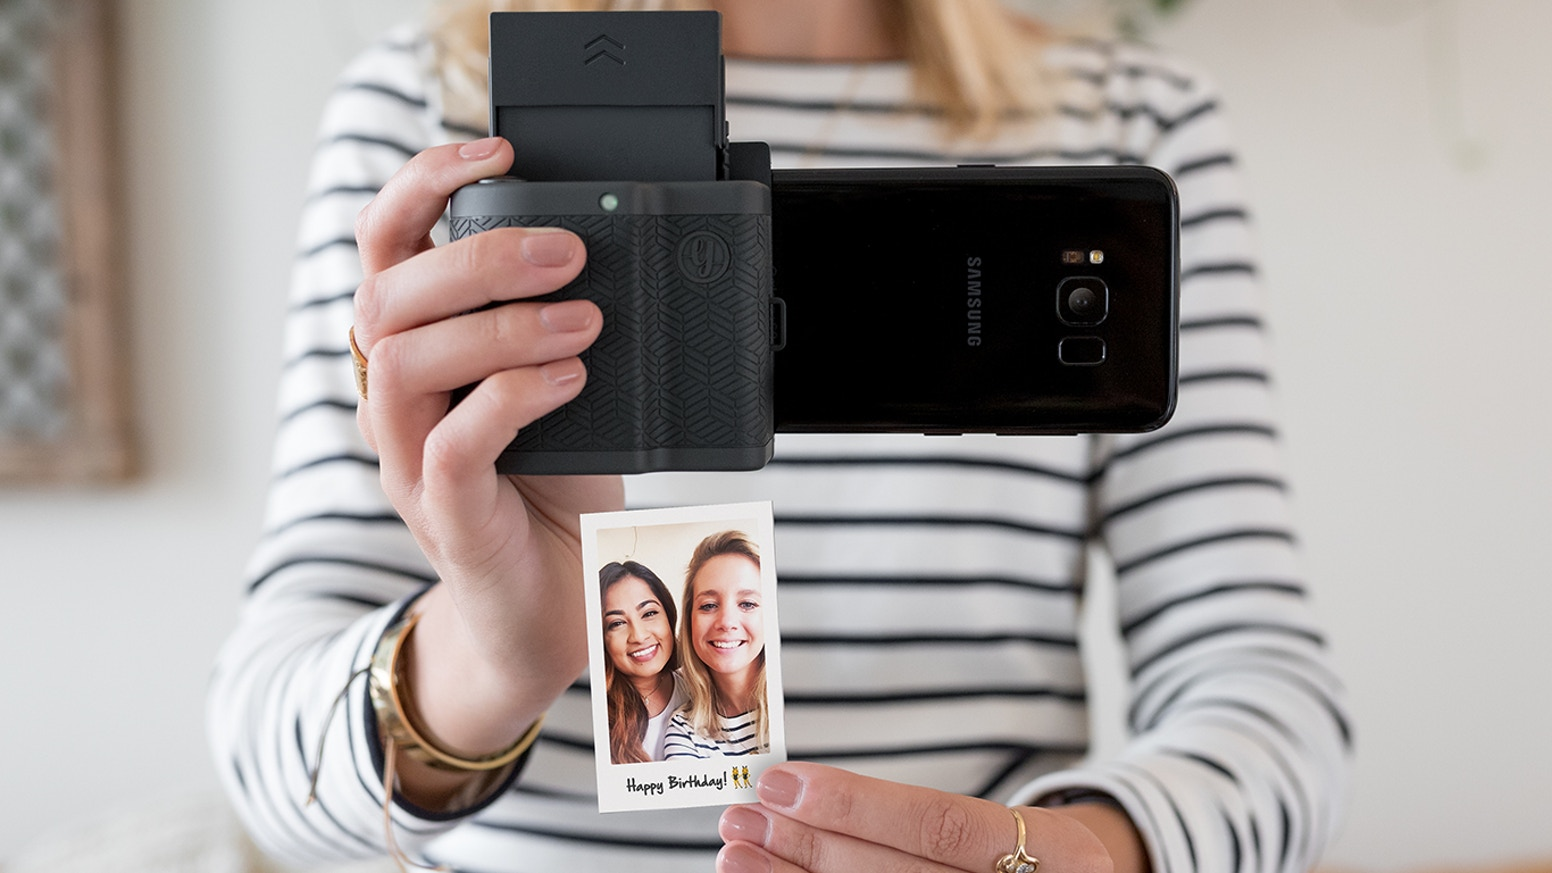 Plug your phone, take a photo, and print in seconds. Then watch your photos come to life through augmented reality!